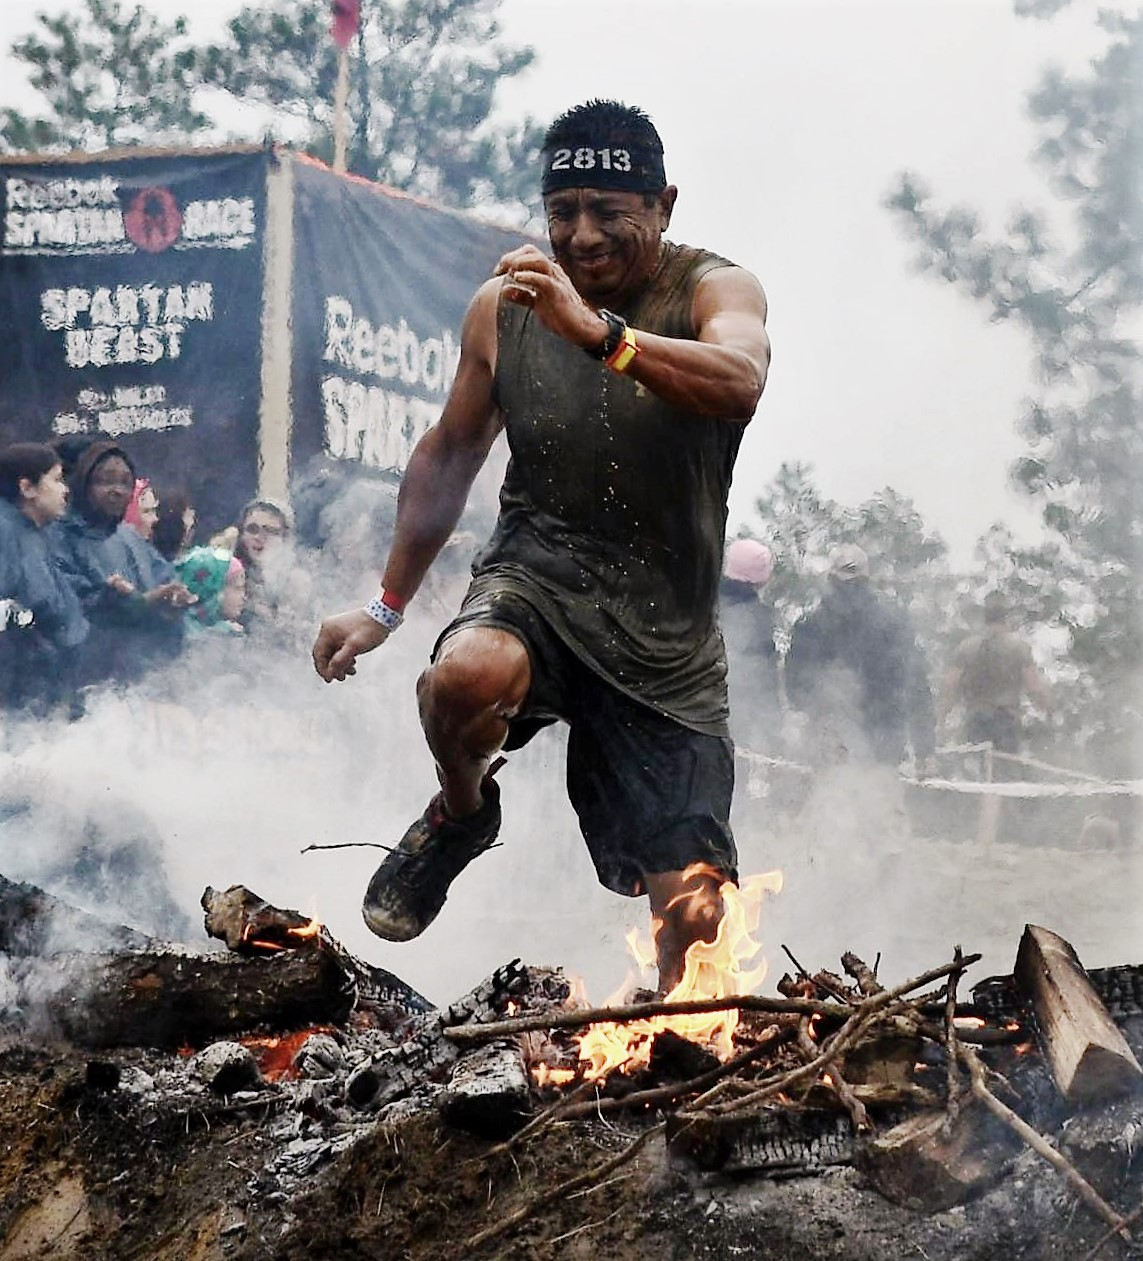 Spartan race fire jump  2